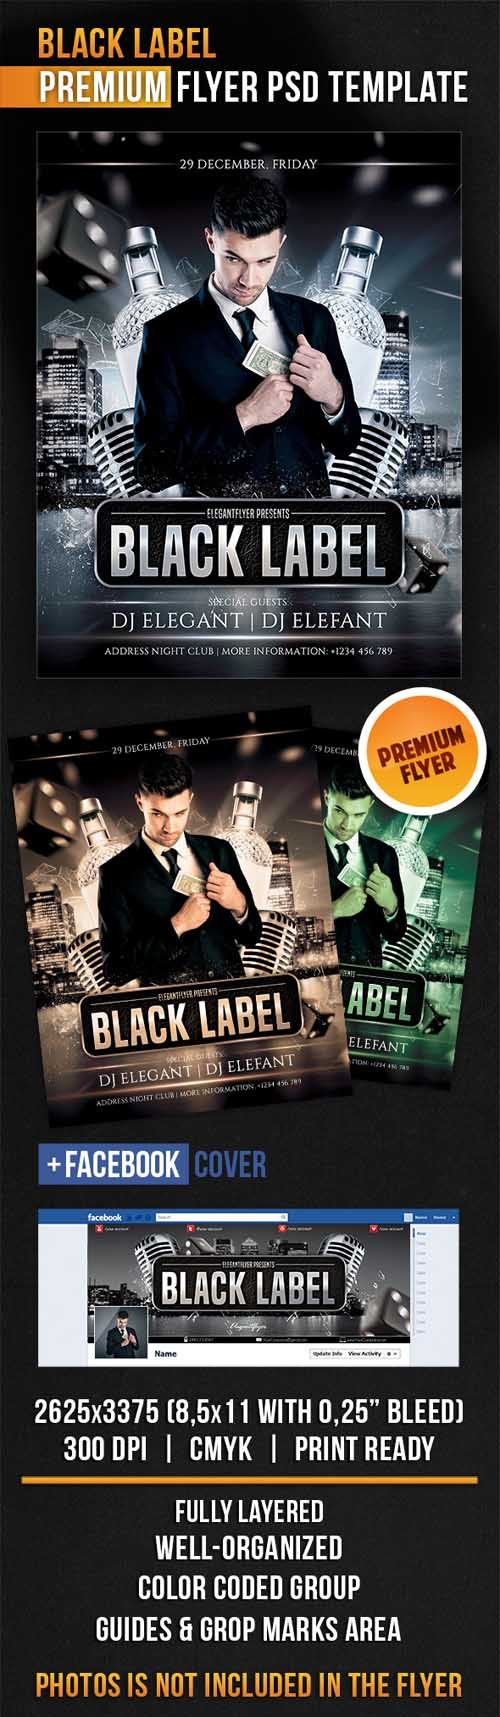 Flyer PSD Template - Black Label + Facebook Cover